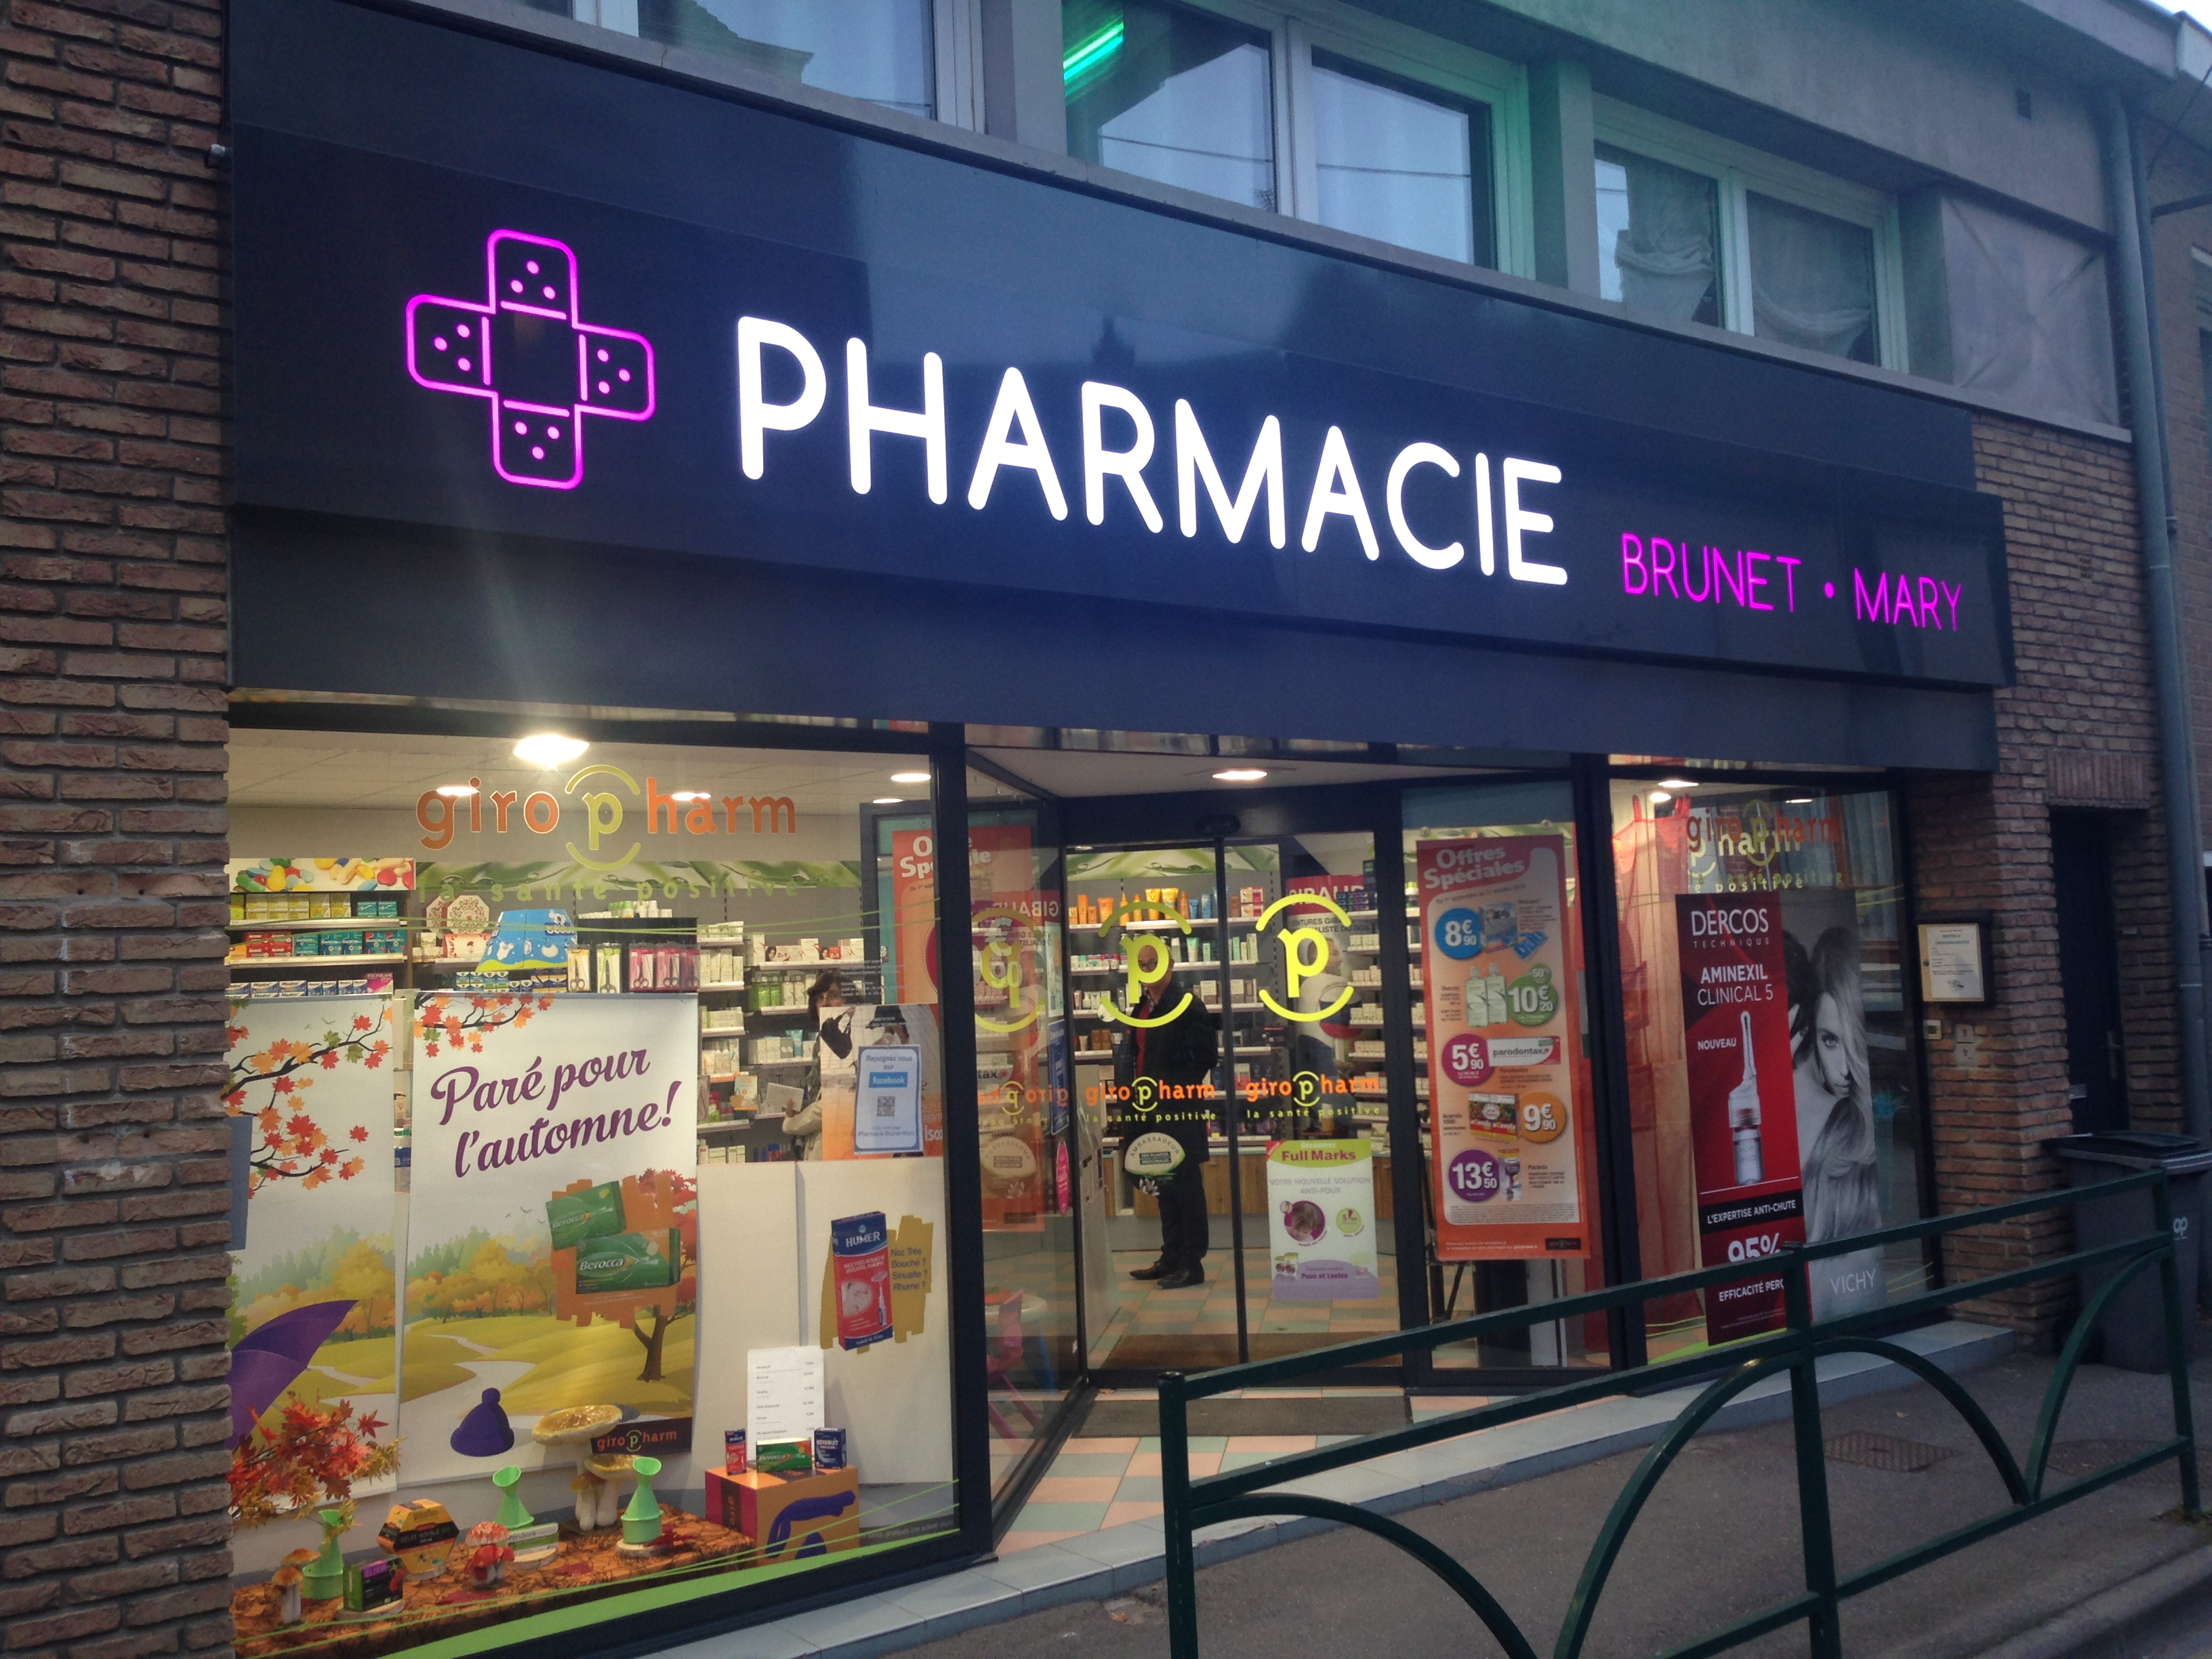 Pharmacie BRUNET MARY